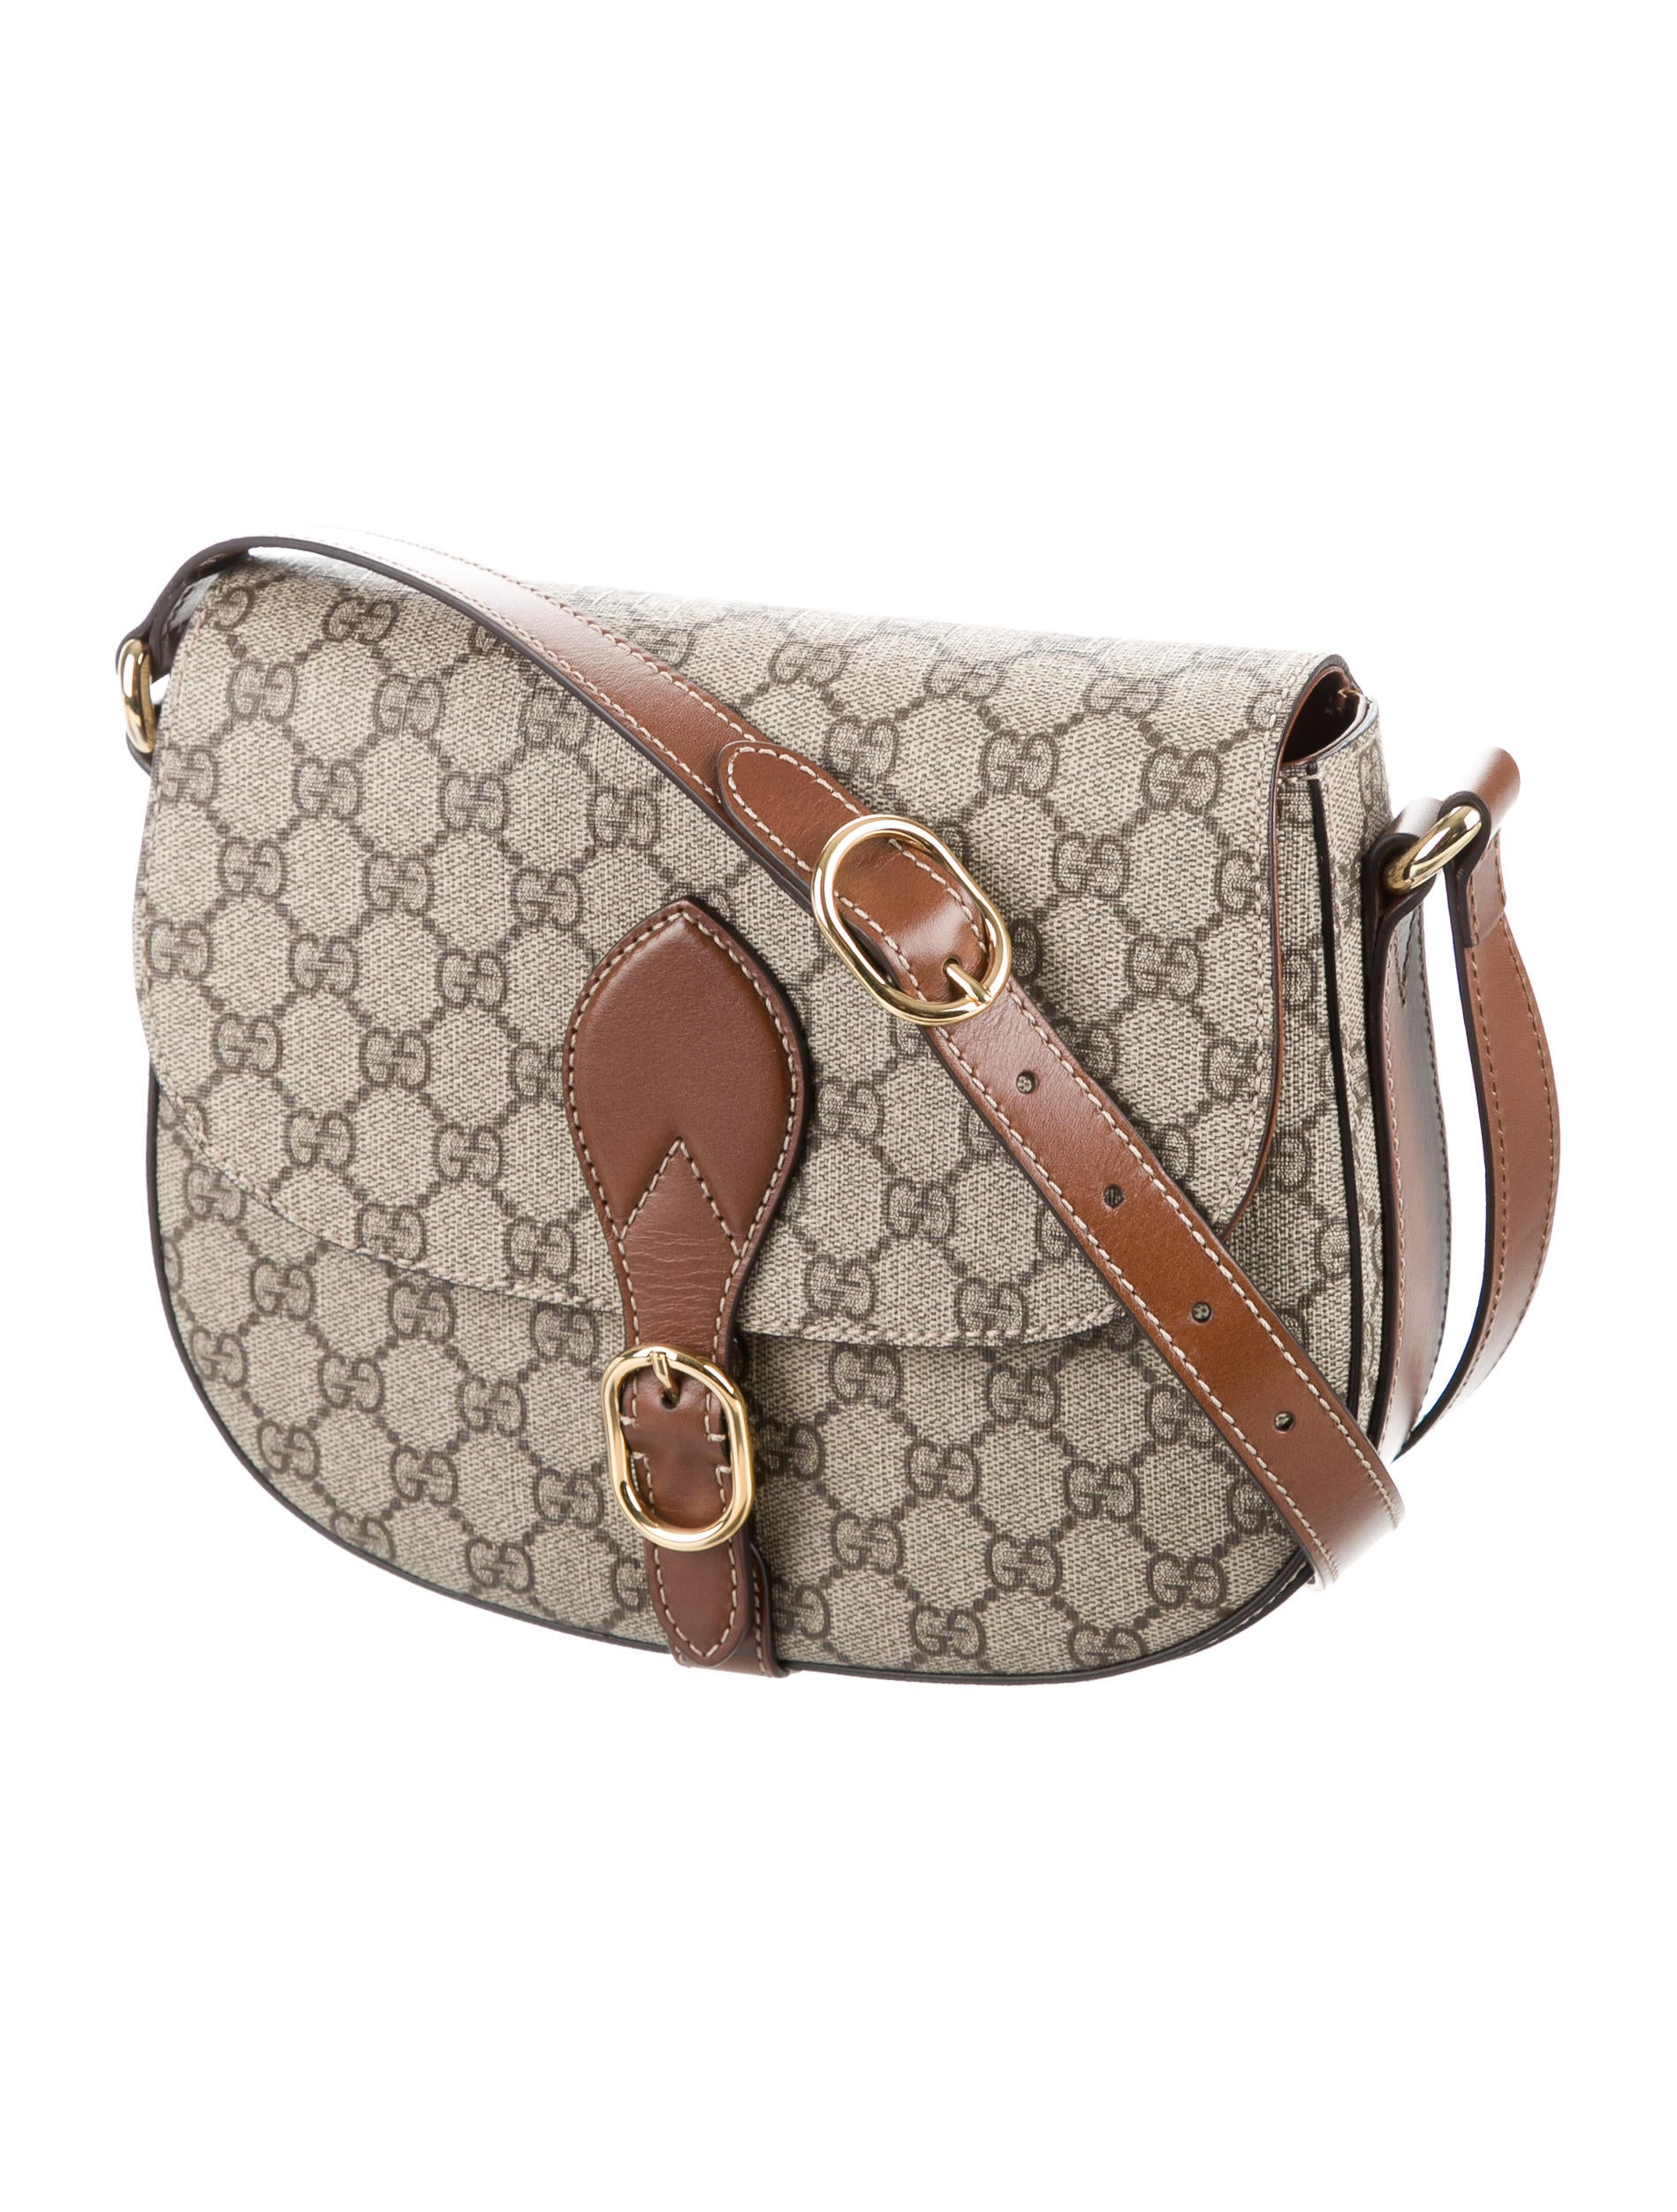 Innovative And The Singers Pricey Gucci Bag Received Almost As Much Attention As The Game Related Beyonc&233 Launches Scholarship Program For Young Women A Very Pregnant Beyonc&233 Held The Beautiful $1,790 Bag At Her Feet Throughout